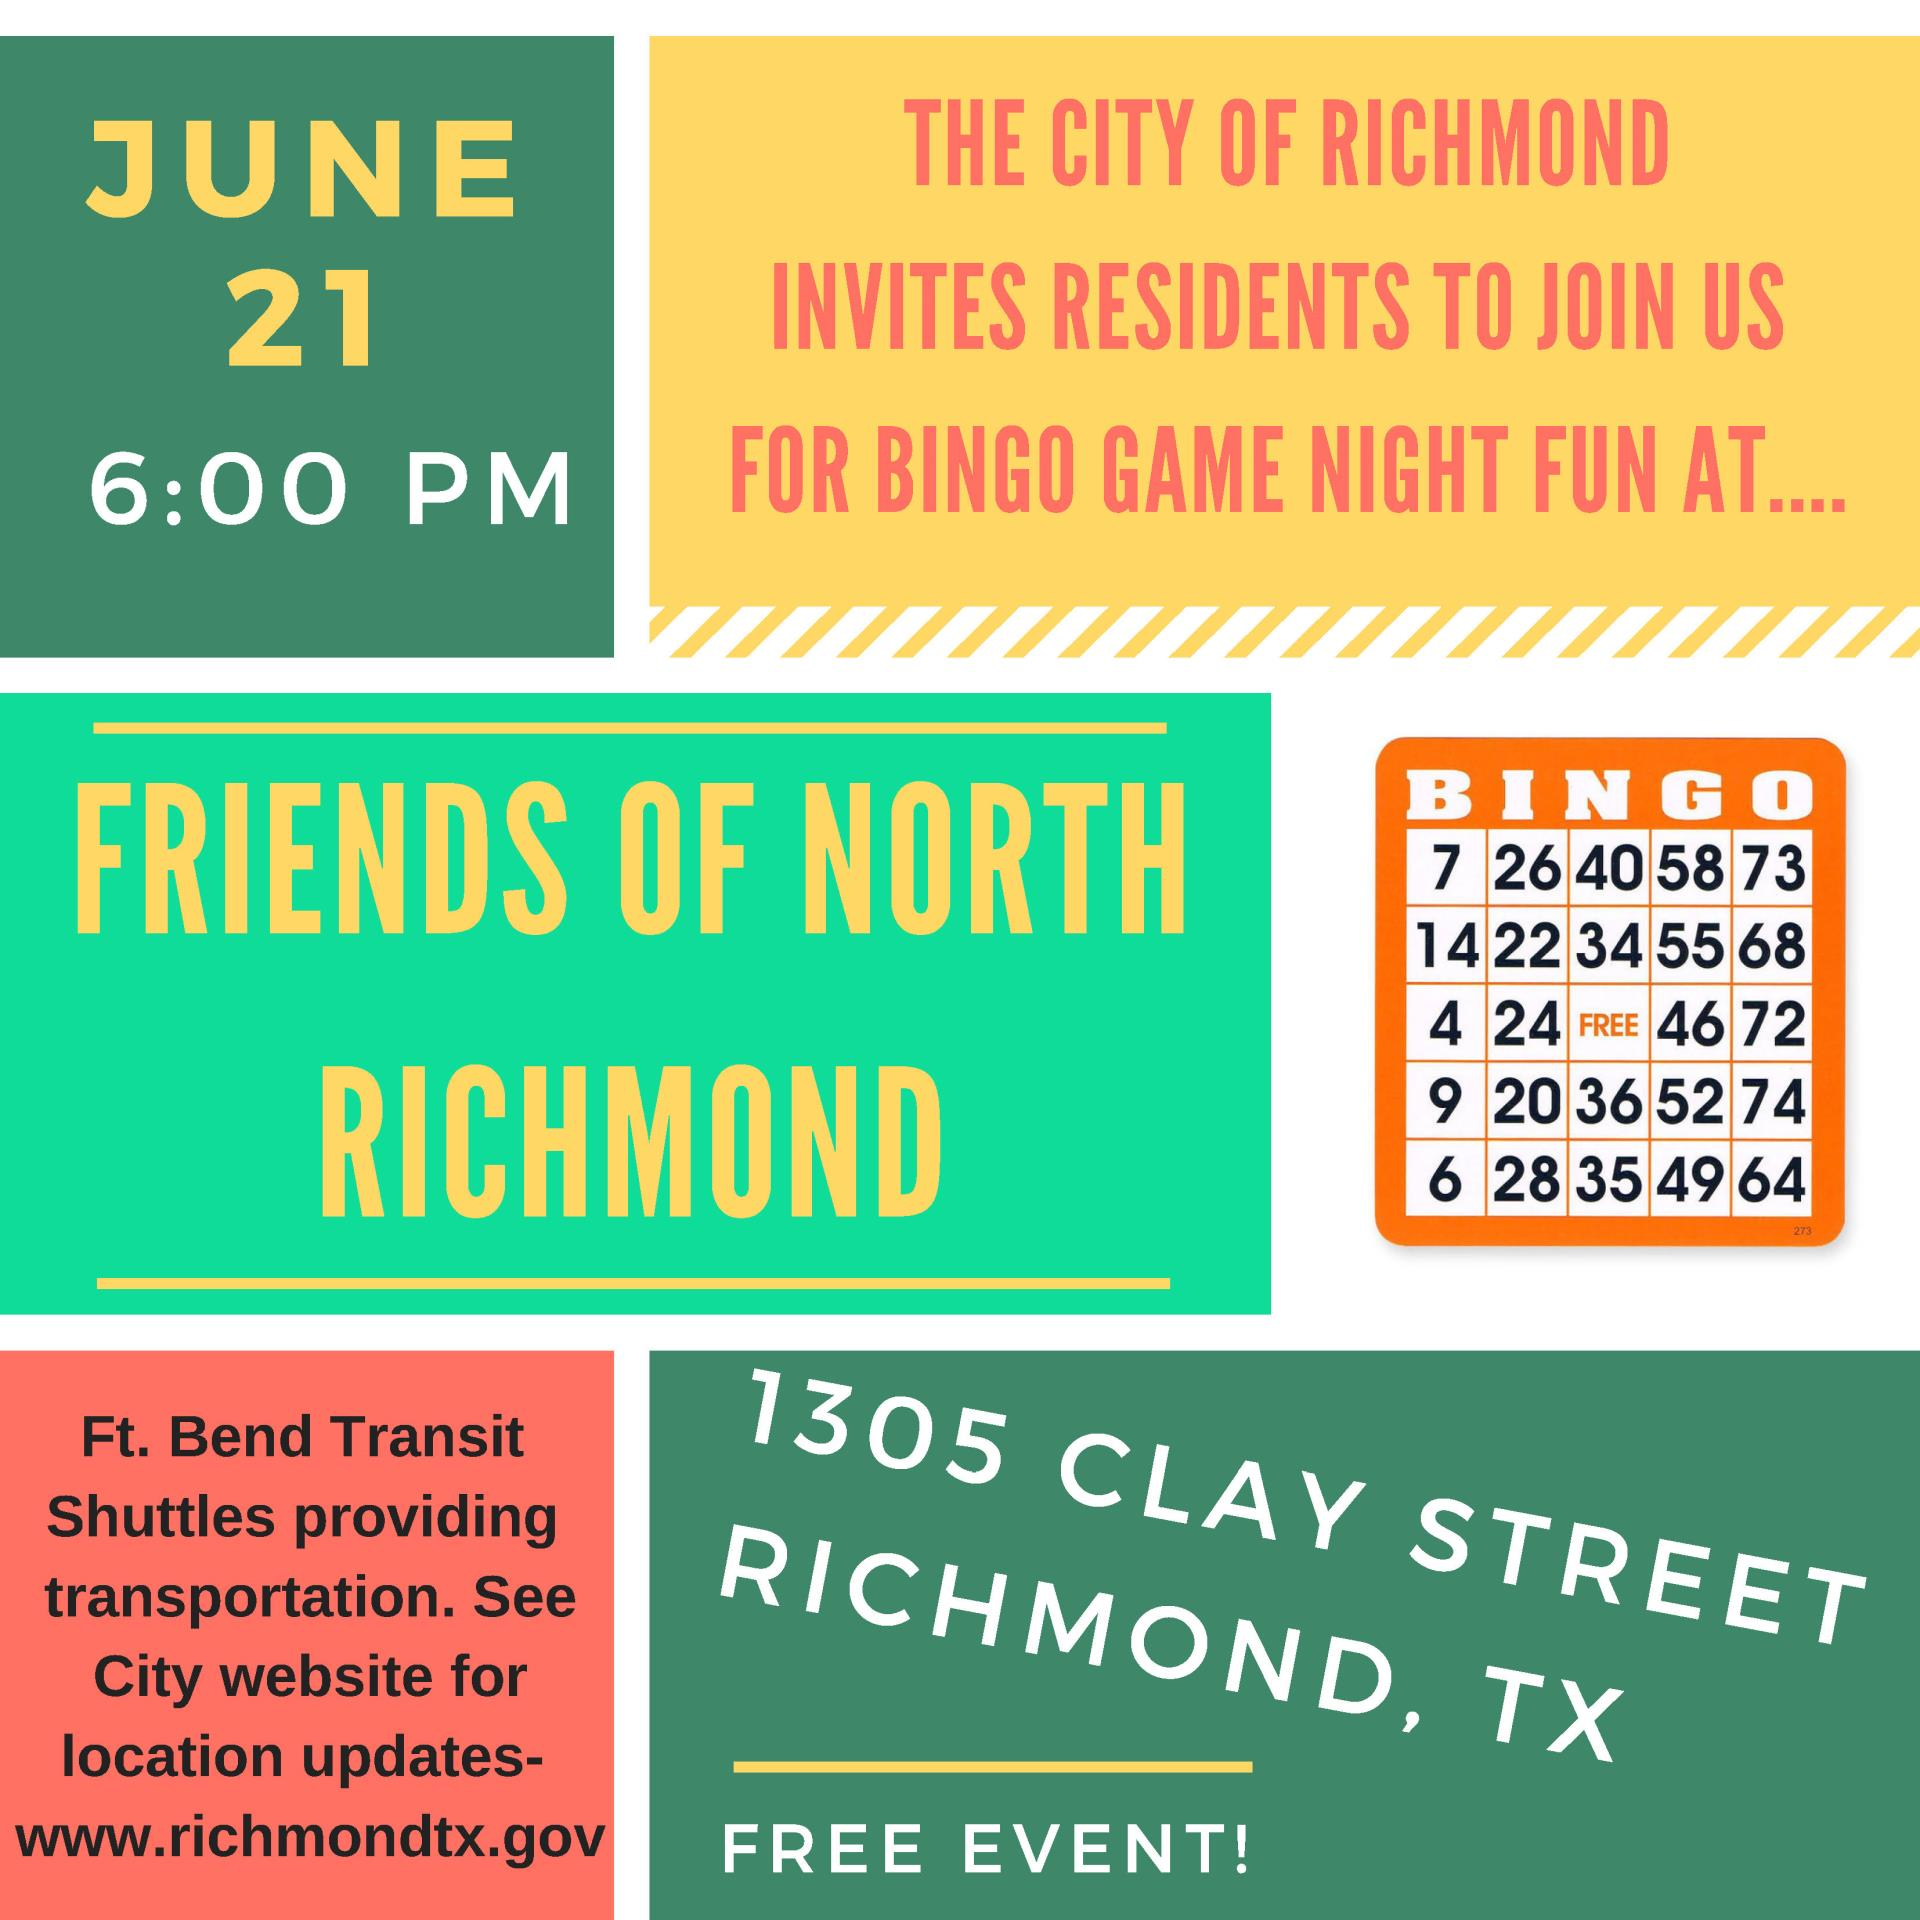 Bingo Game Night 2018 at Friends of North Richmond